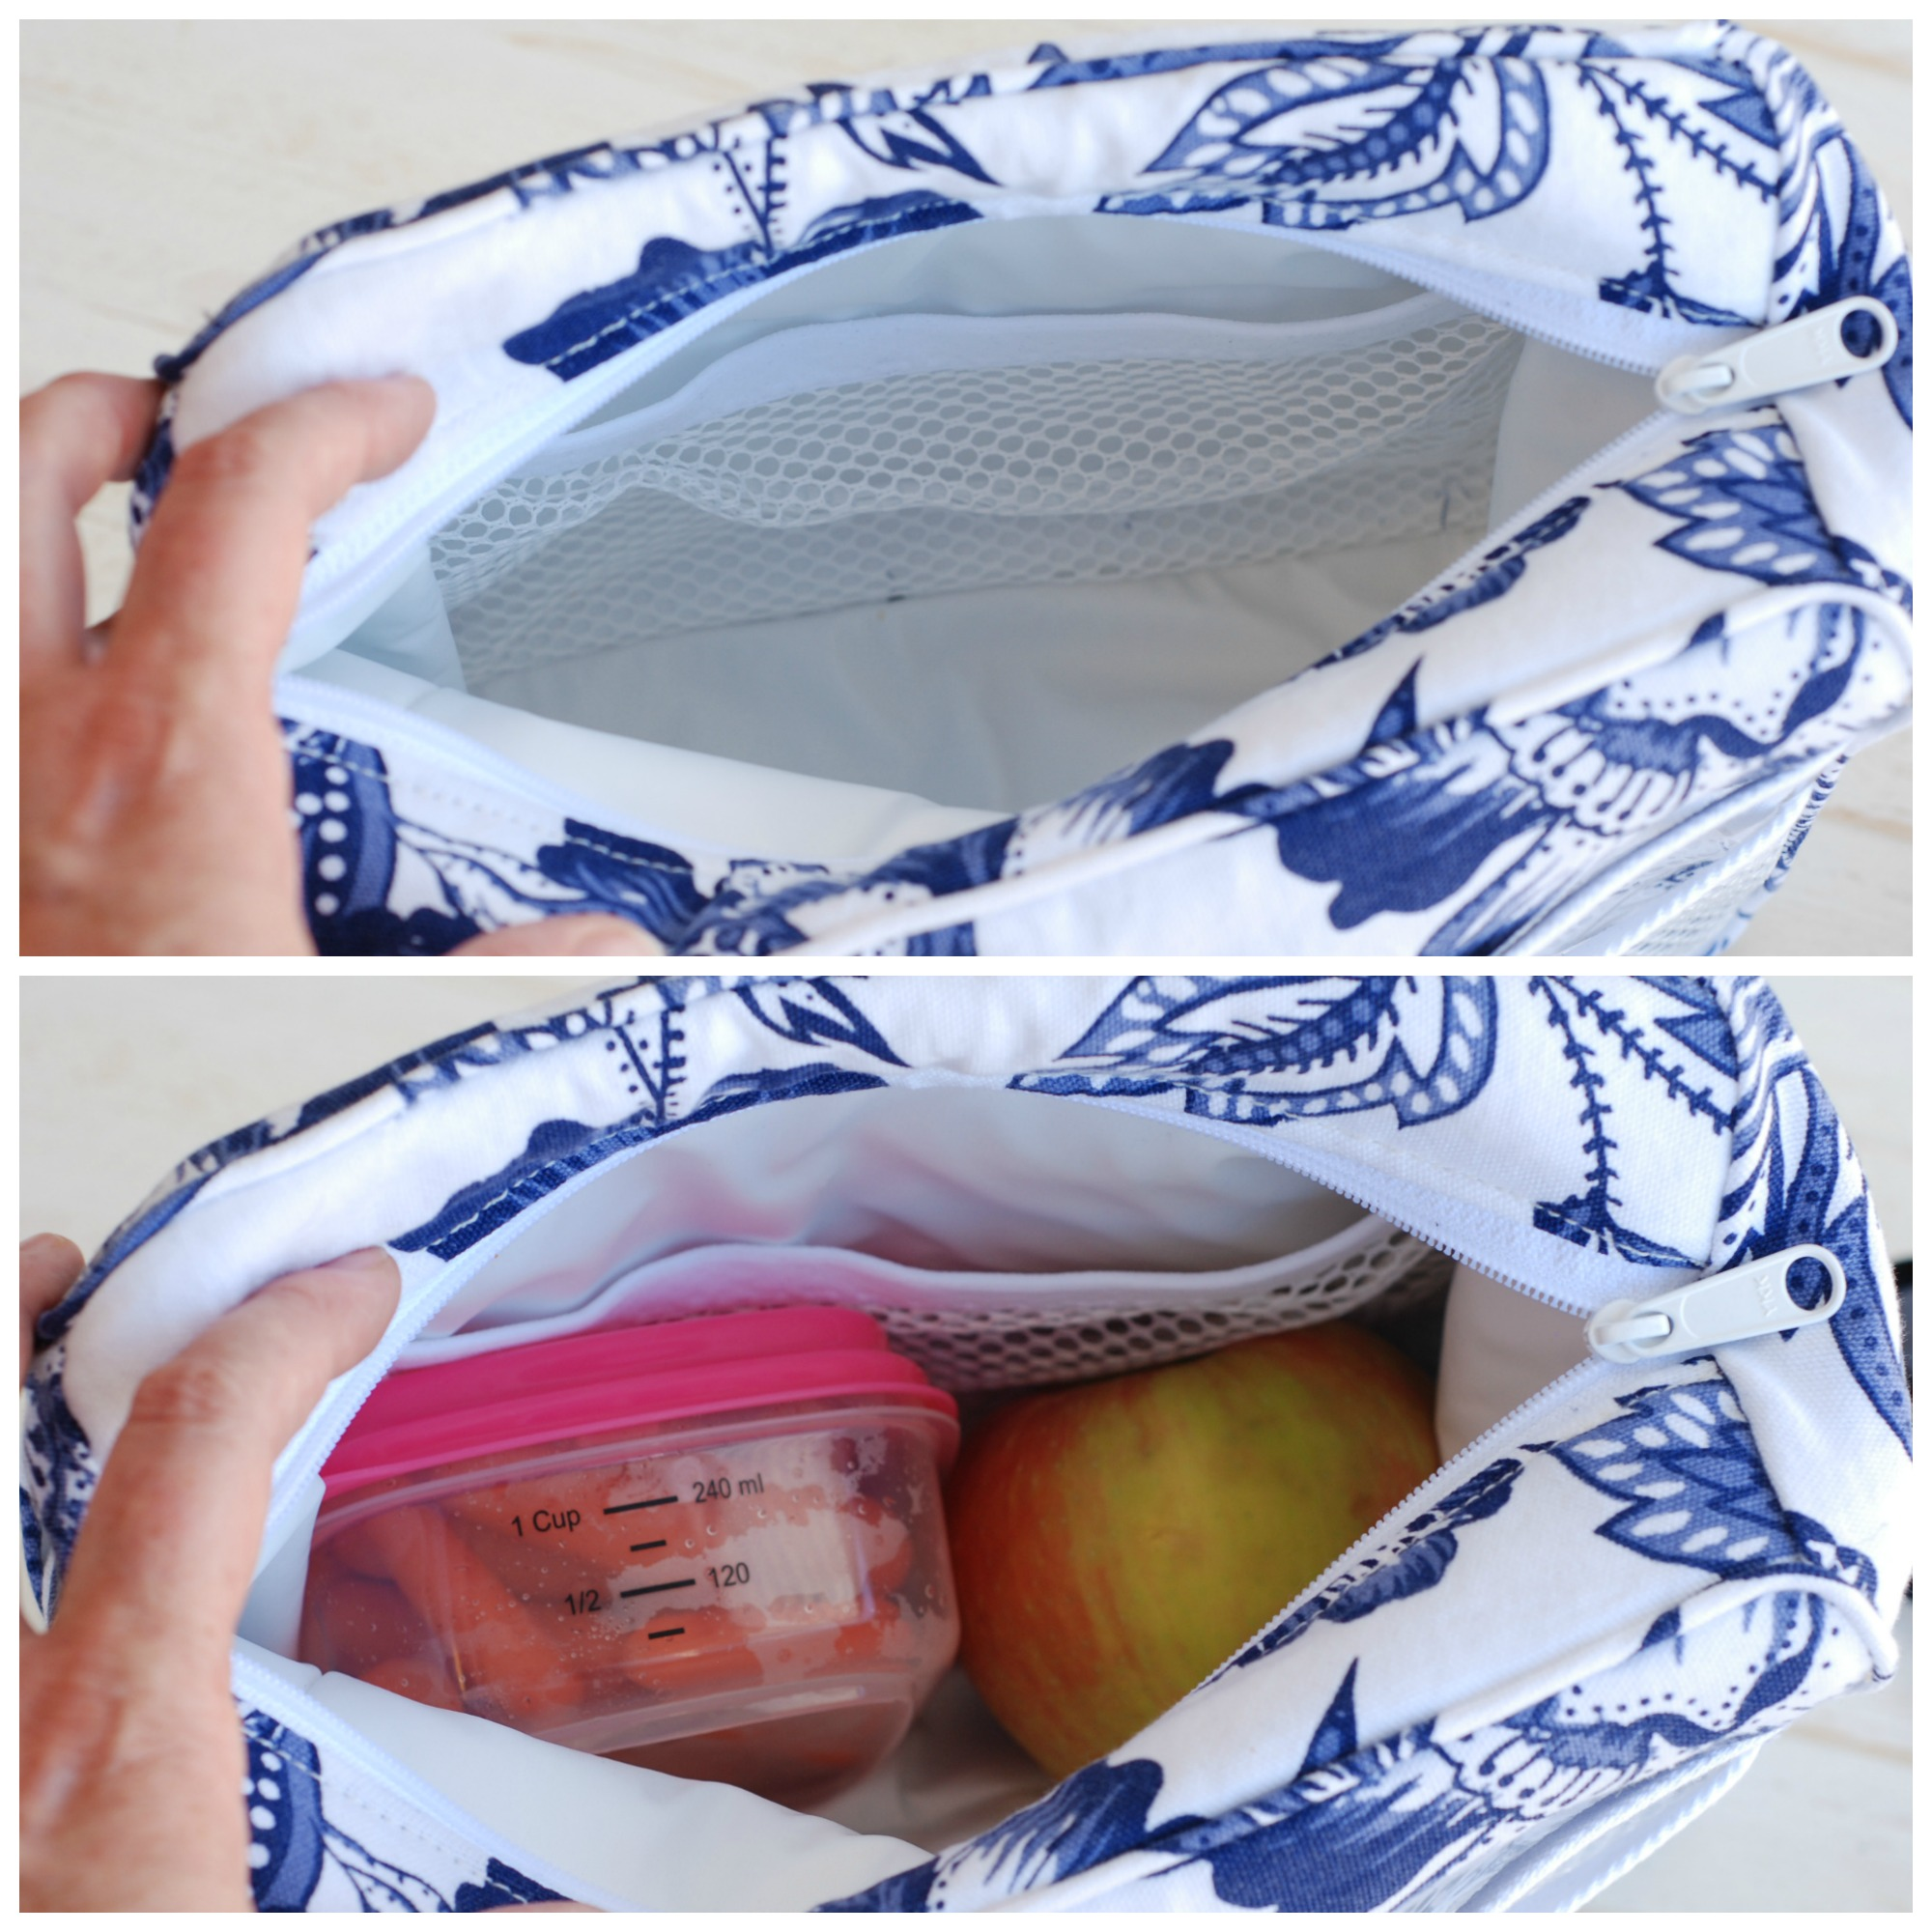 Cooler Purse Organizer by Beneficial Bento - find these in my Etsy shop!